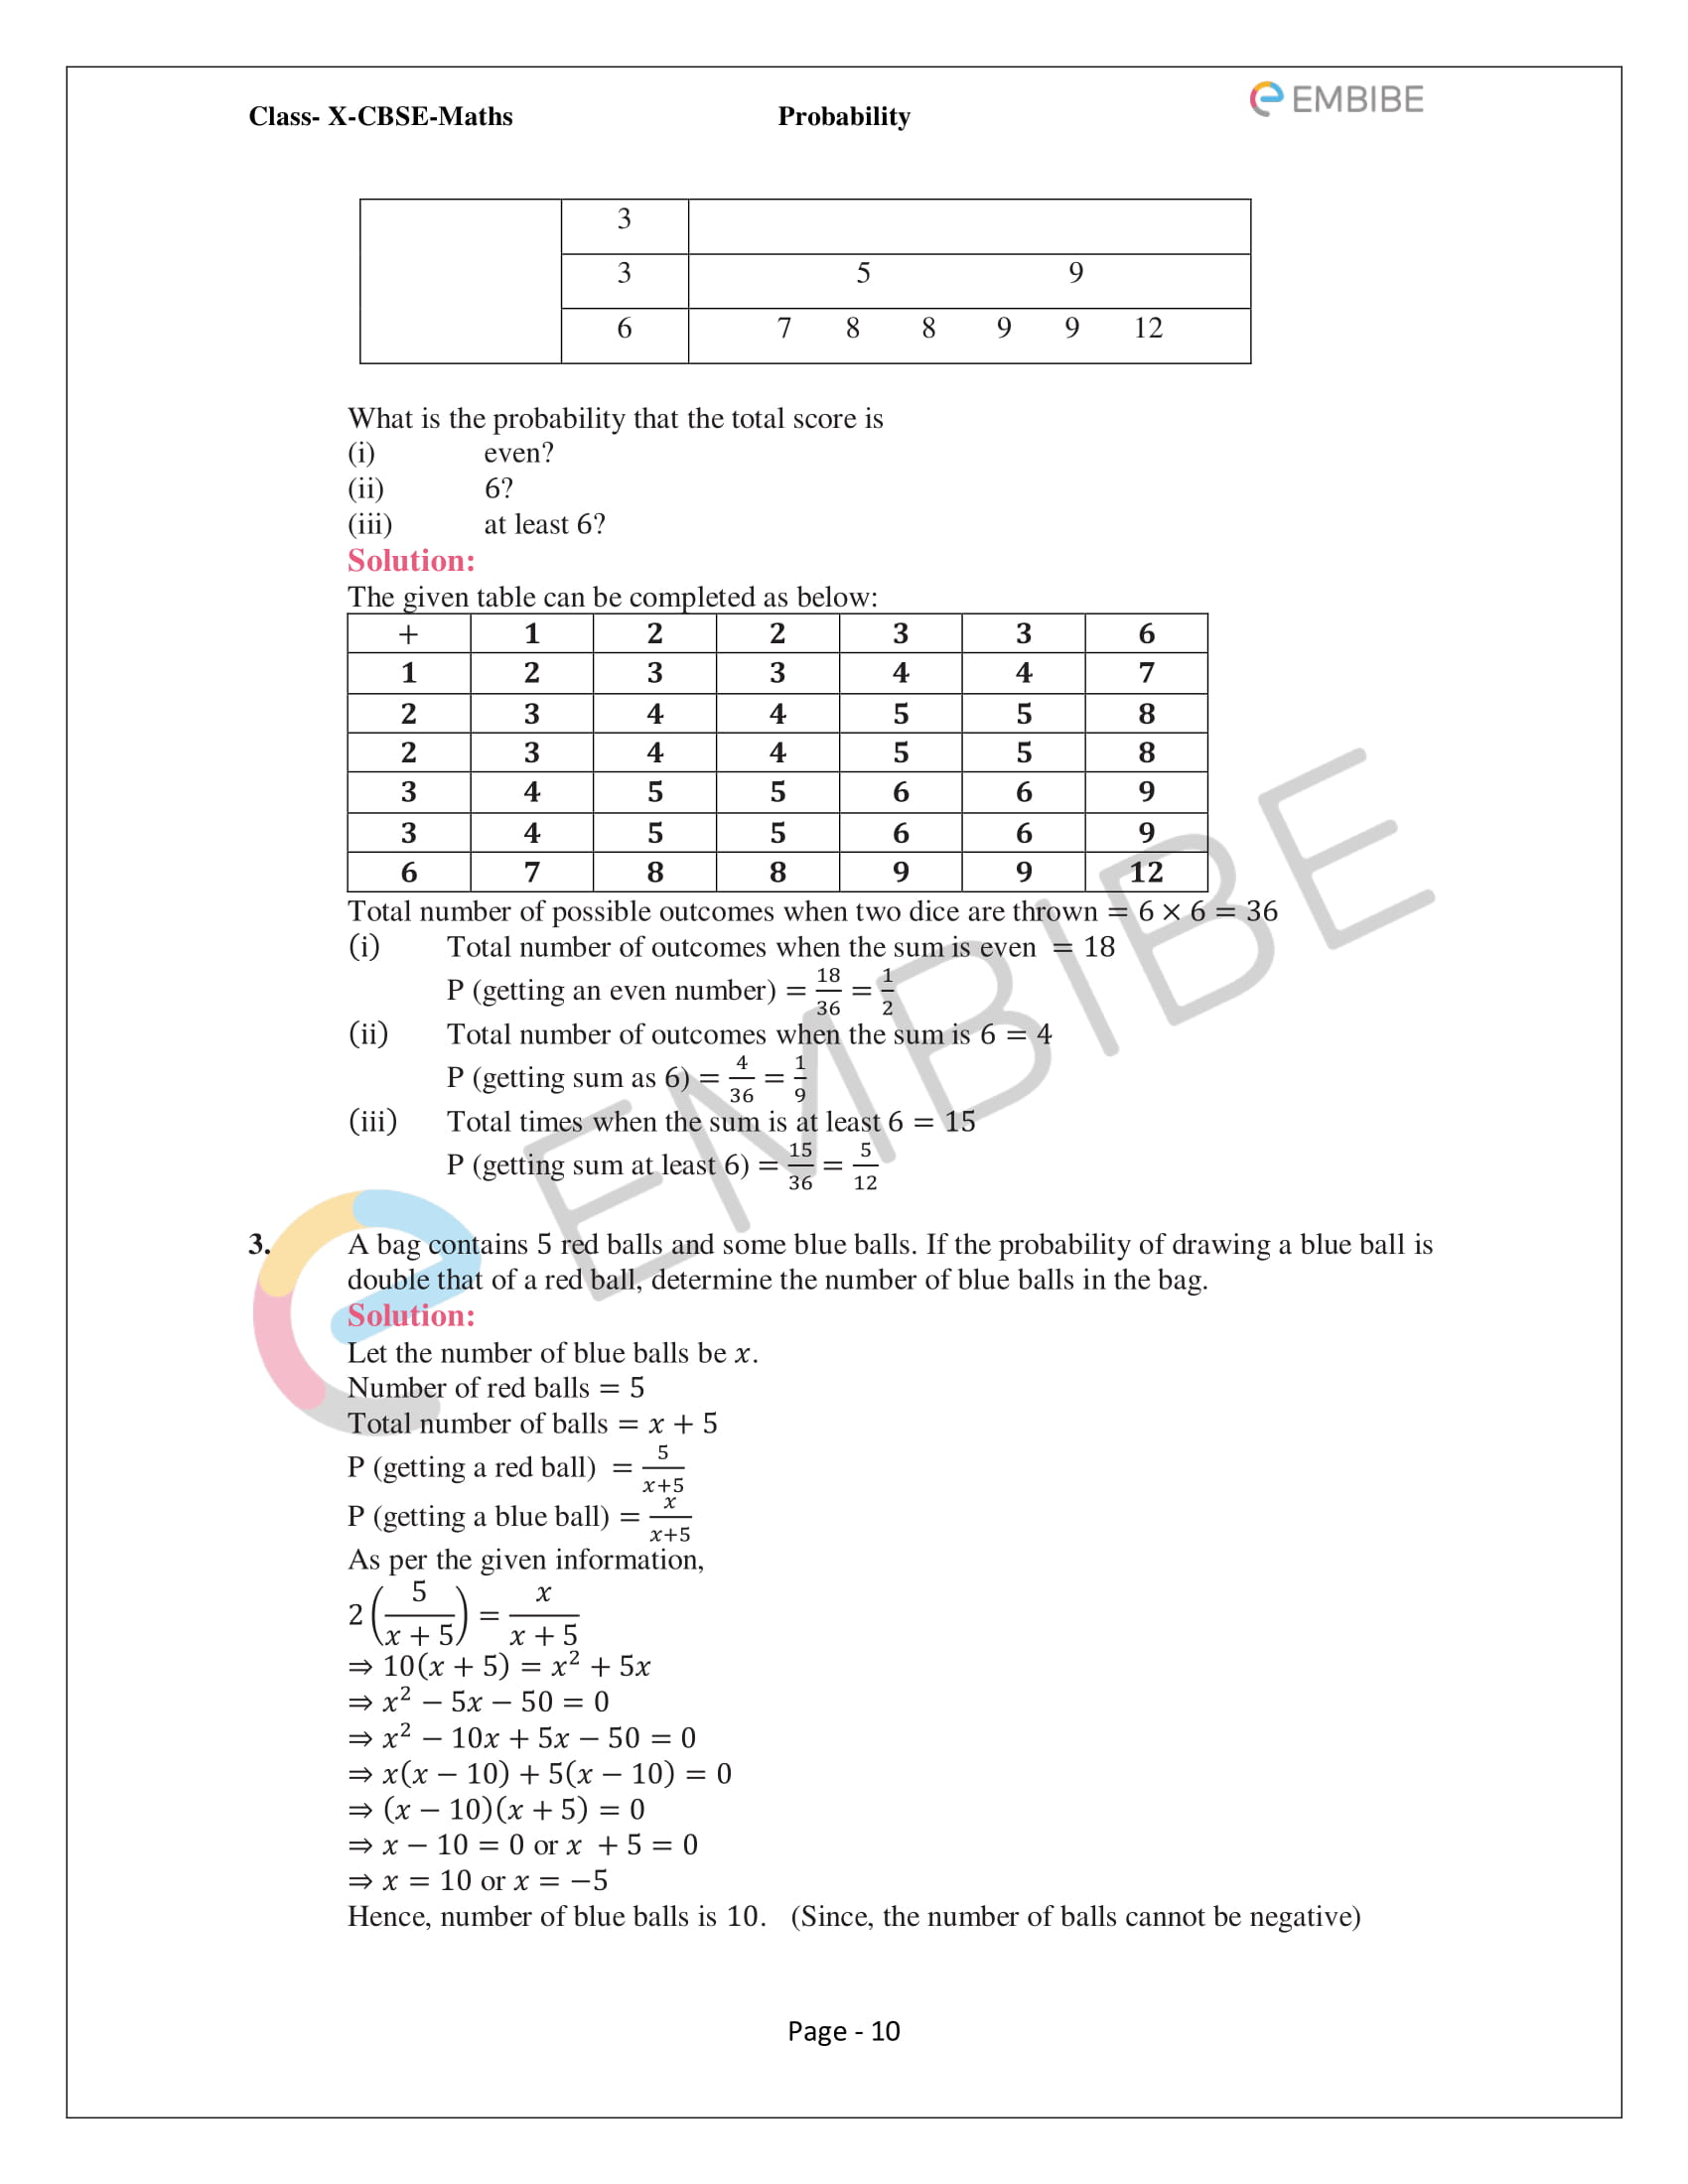 NCERT Solutions For Class 10 Maths Chapter 15: Probability